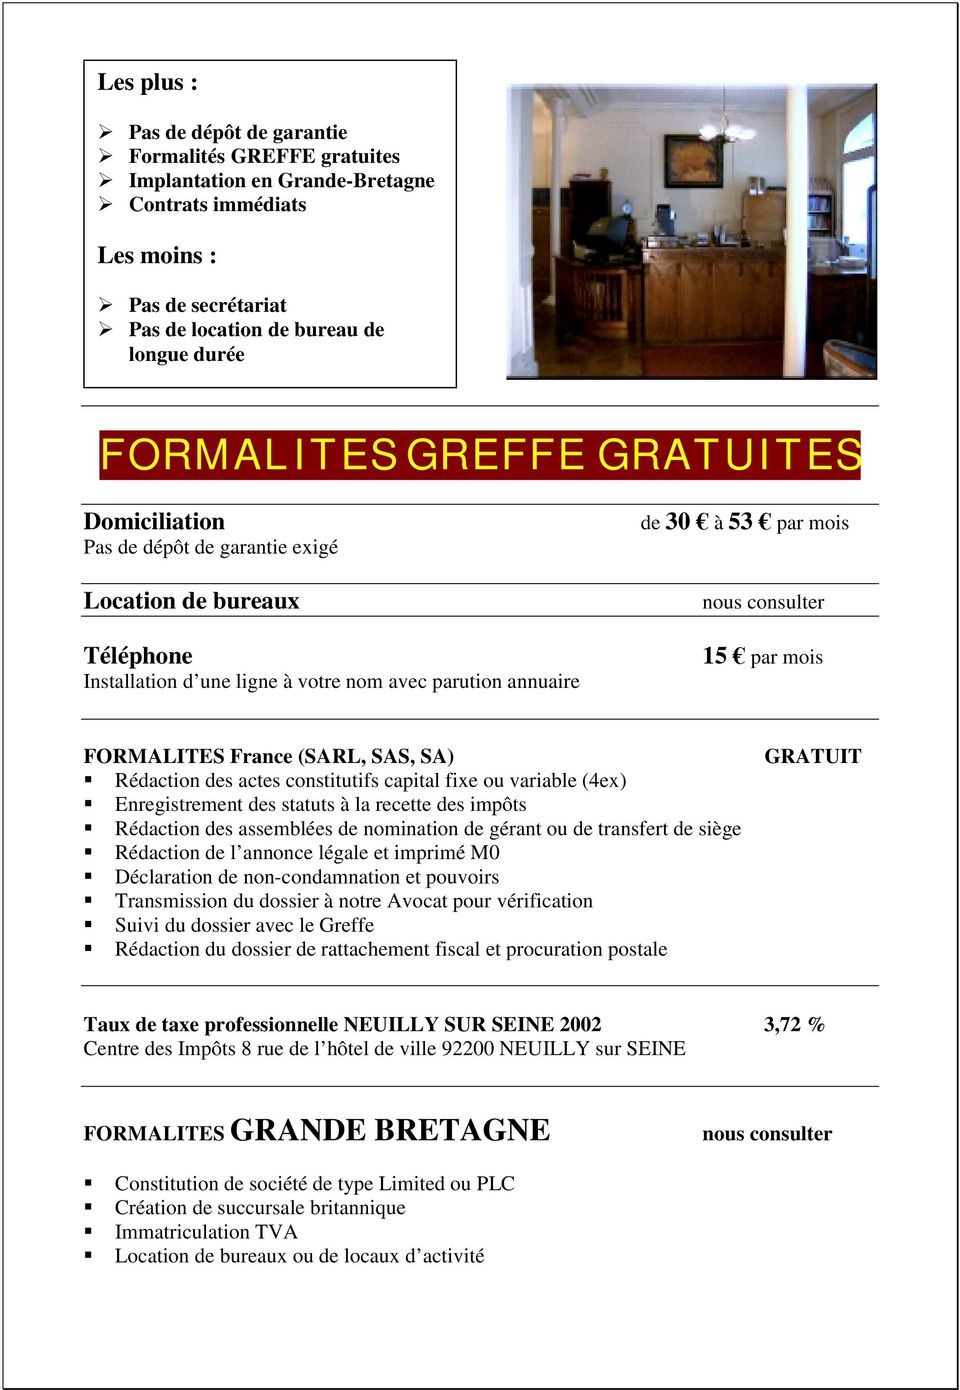 FORMALITES France (SARL, SAS, SA) Rédaction des actes constitutifs capital fixe ou variable (4ex) Enregistrement des statuts à la recette des impôts Rédaction des assemblées de nomination de gérant